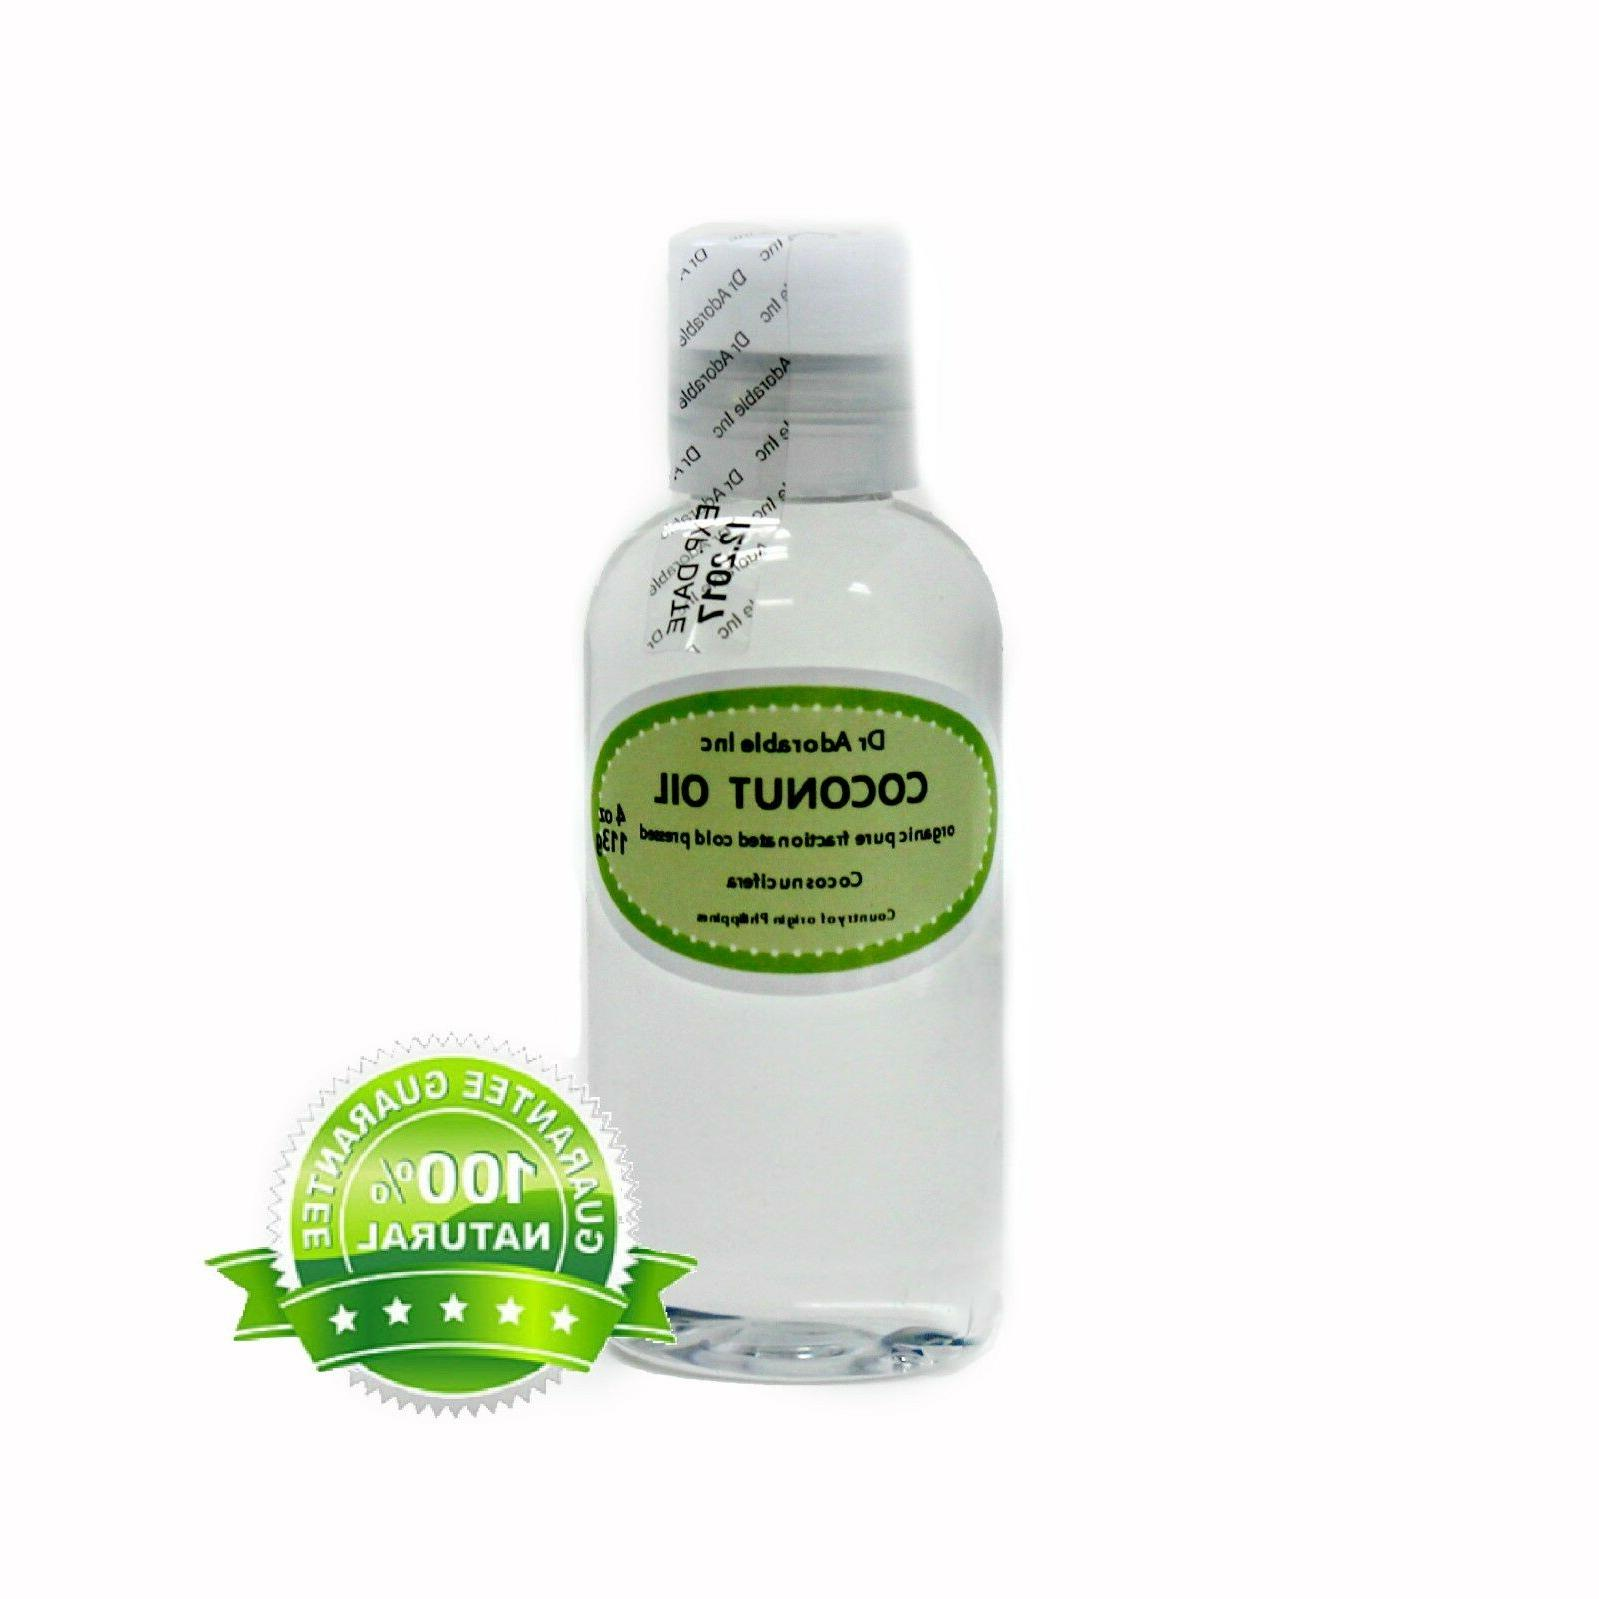 Coconut Fractionated Oil 100 % Pure Skin Care Comes with a S